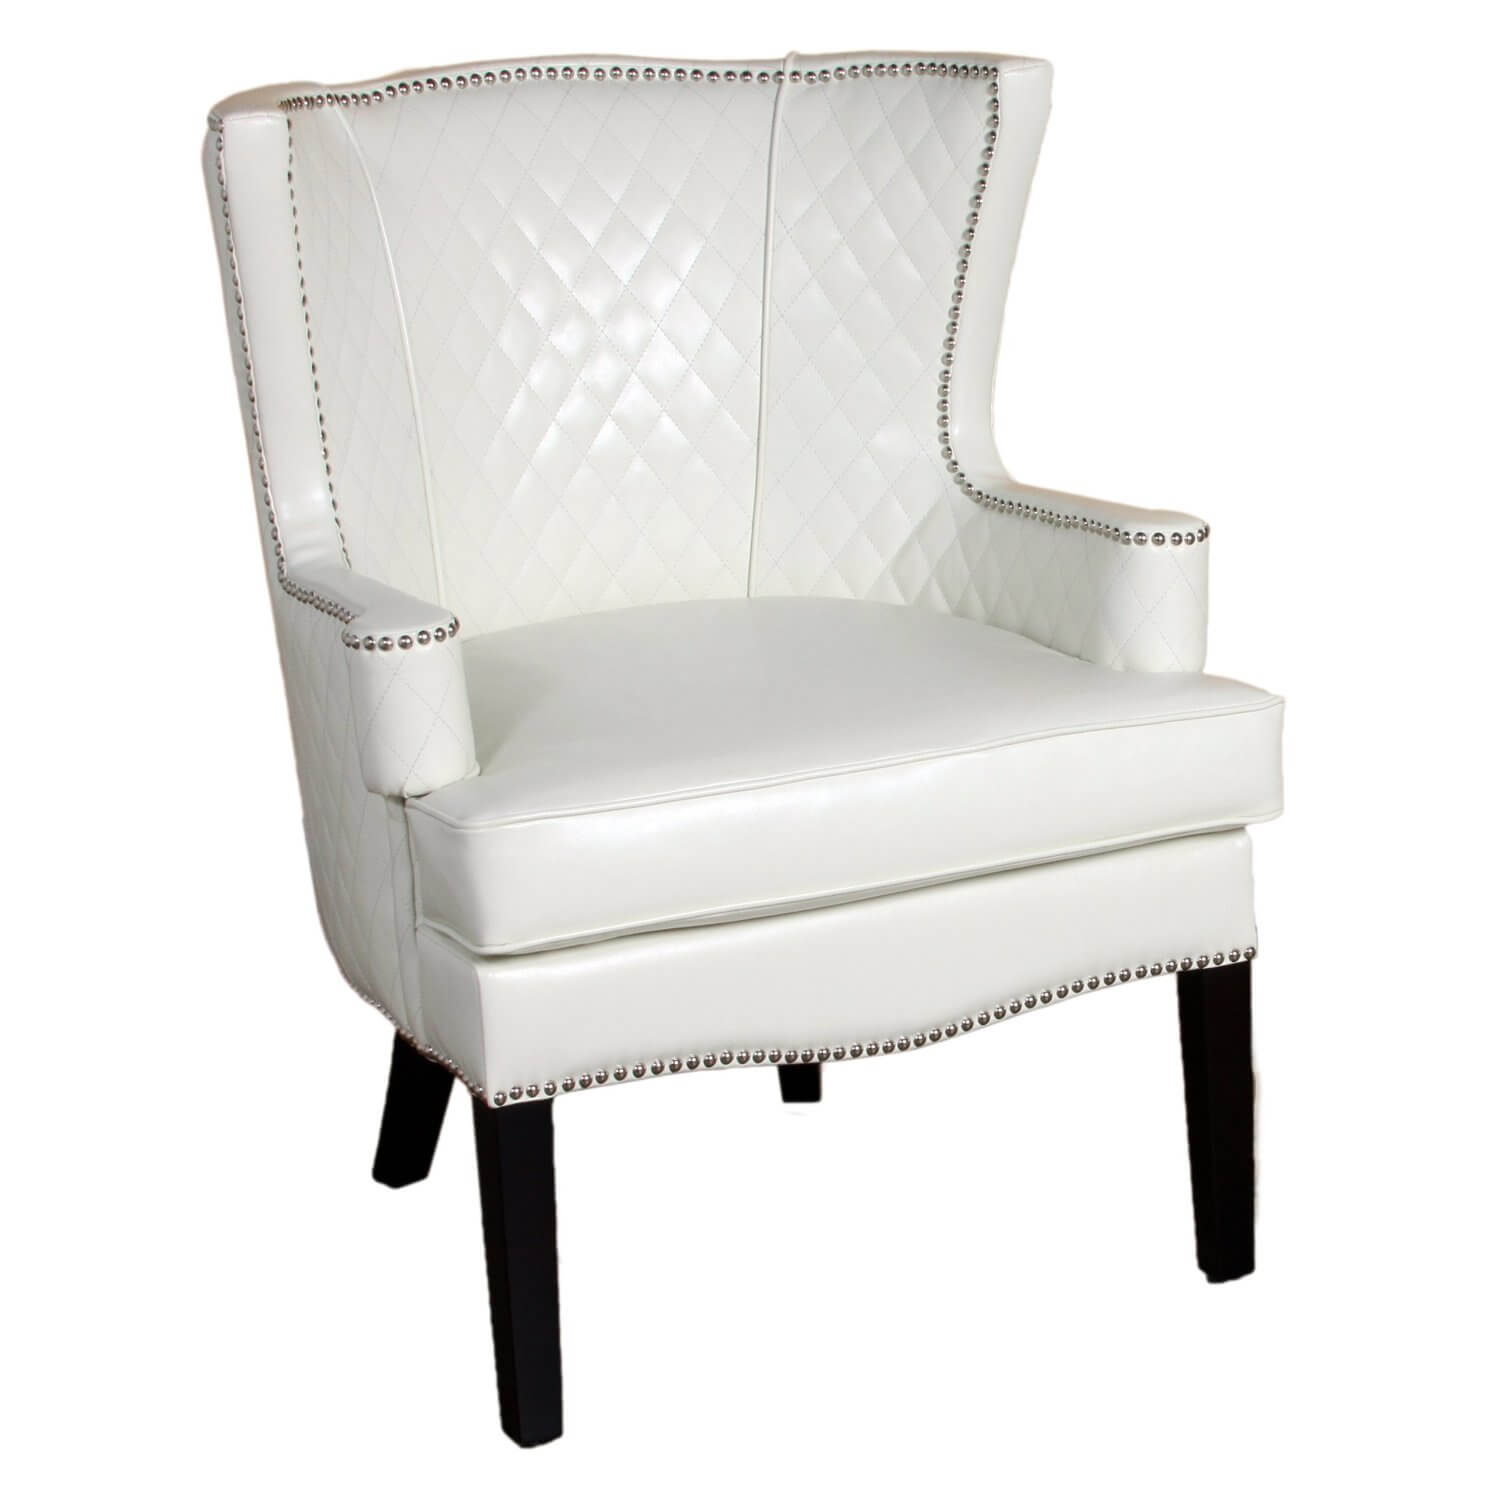 leather accent chairs for living room help decorating my 37 white modern the another ivory toned chair this quilted seat by best features wide seating with